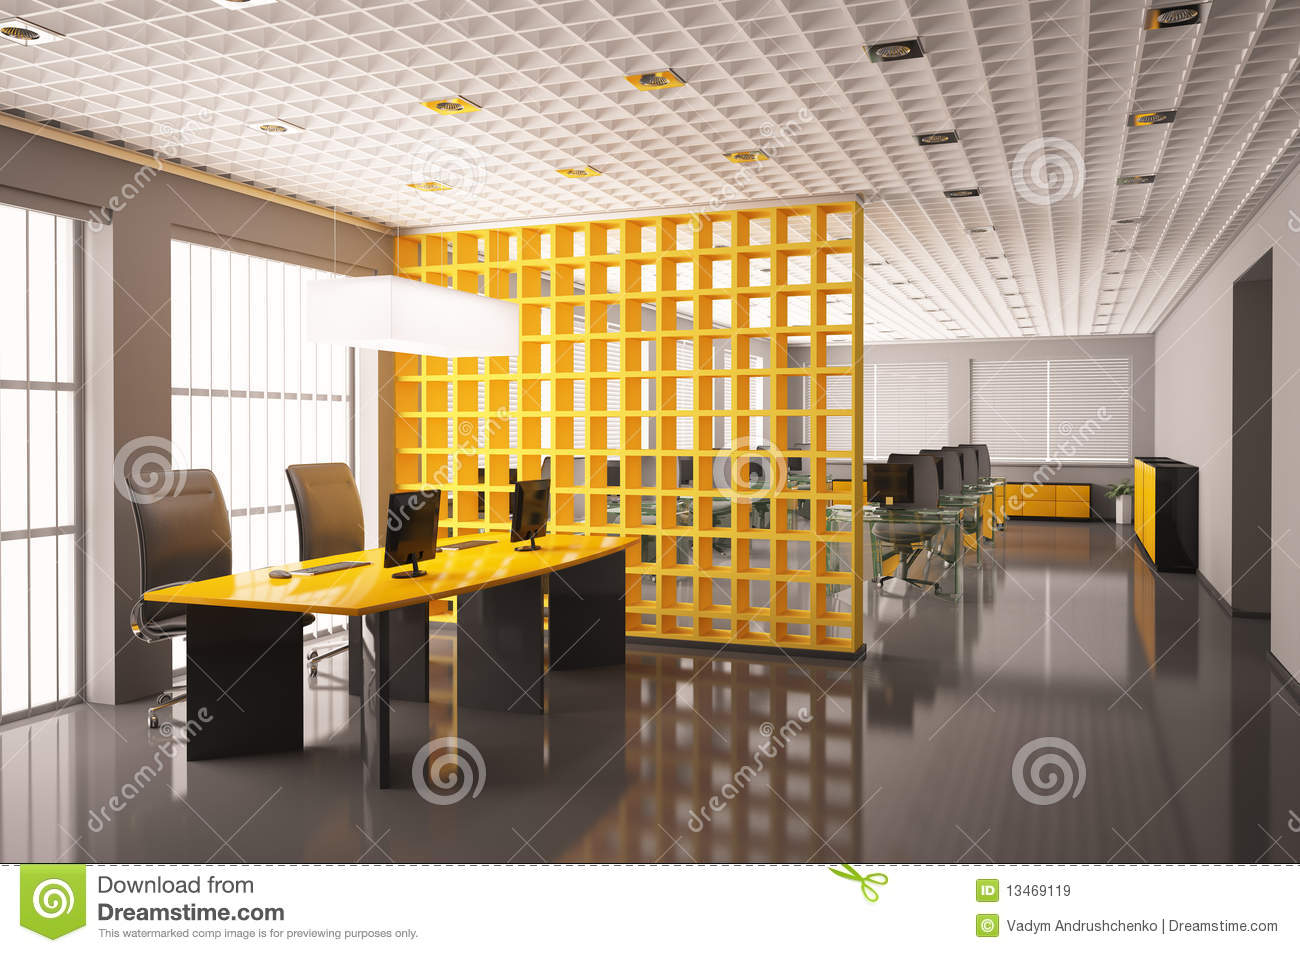 Modern Office Interior 3d Render Stock Illustration - Illustration: 13469119